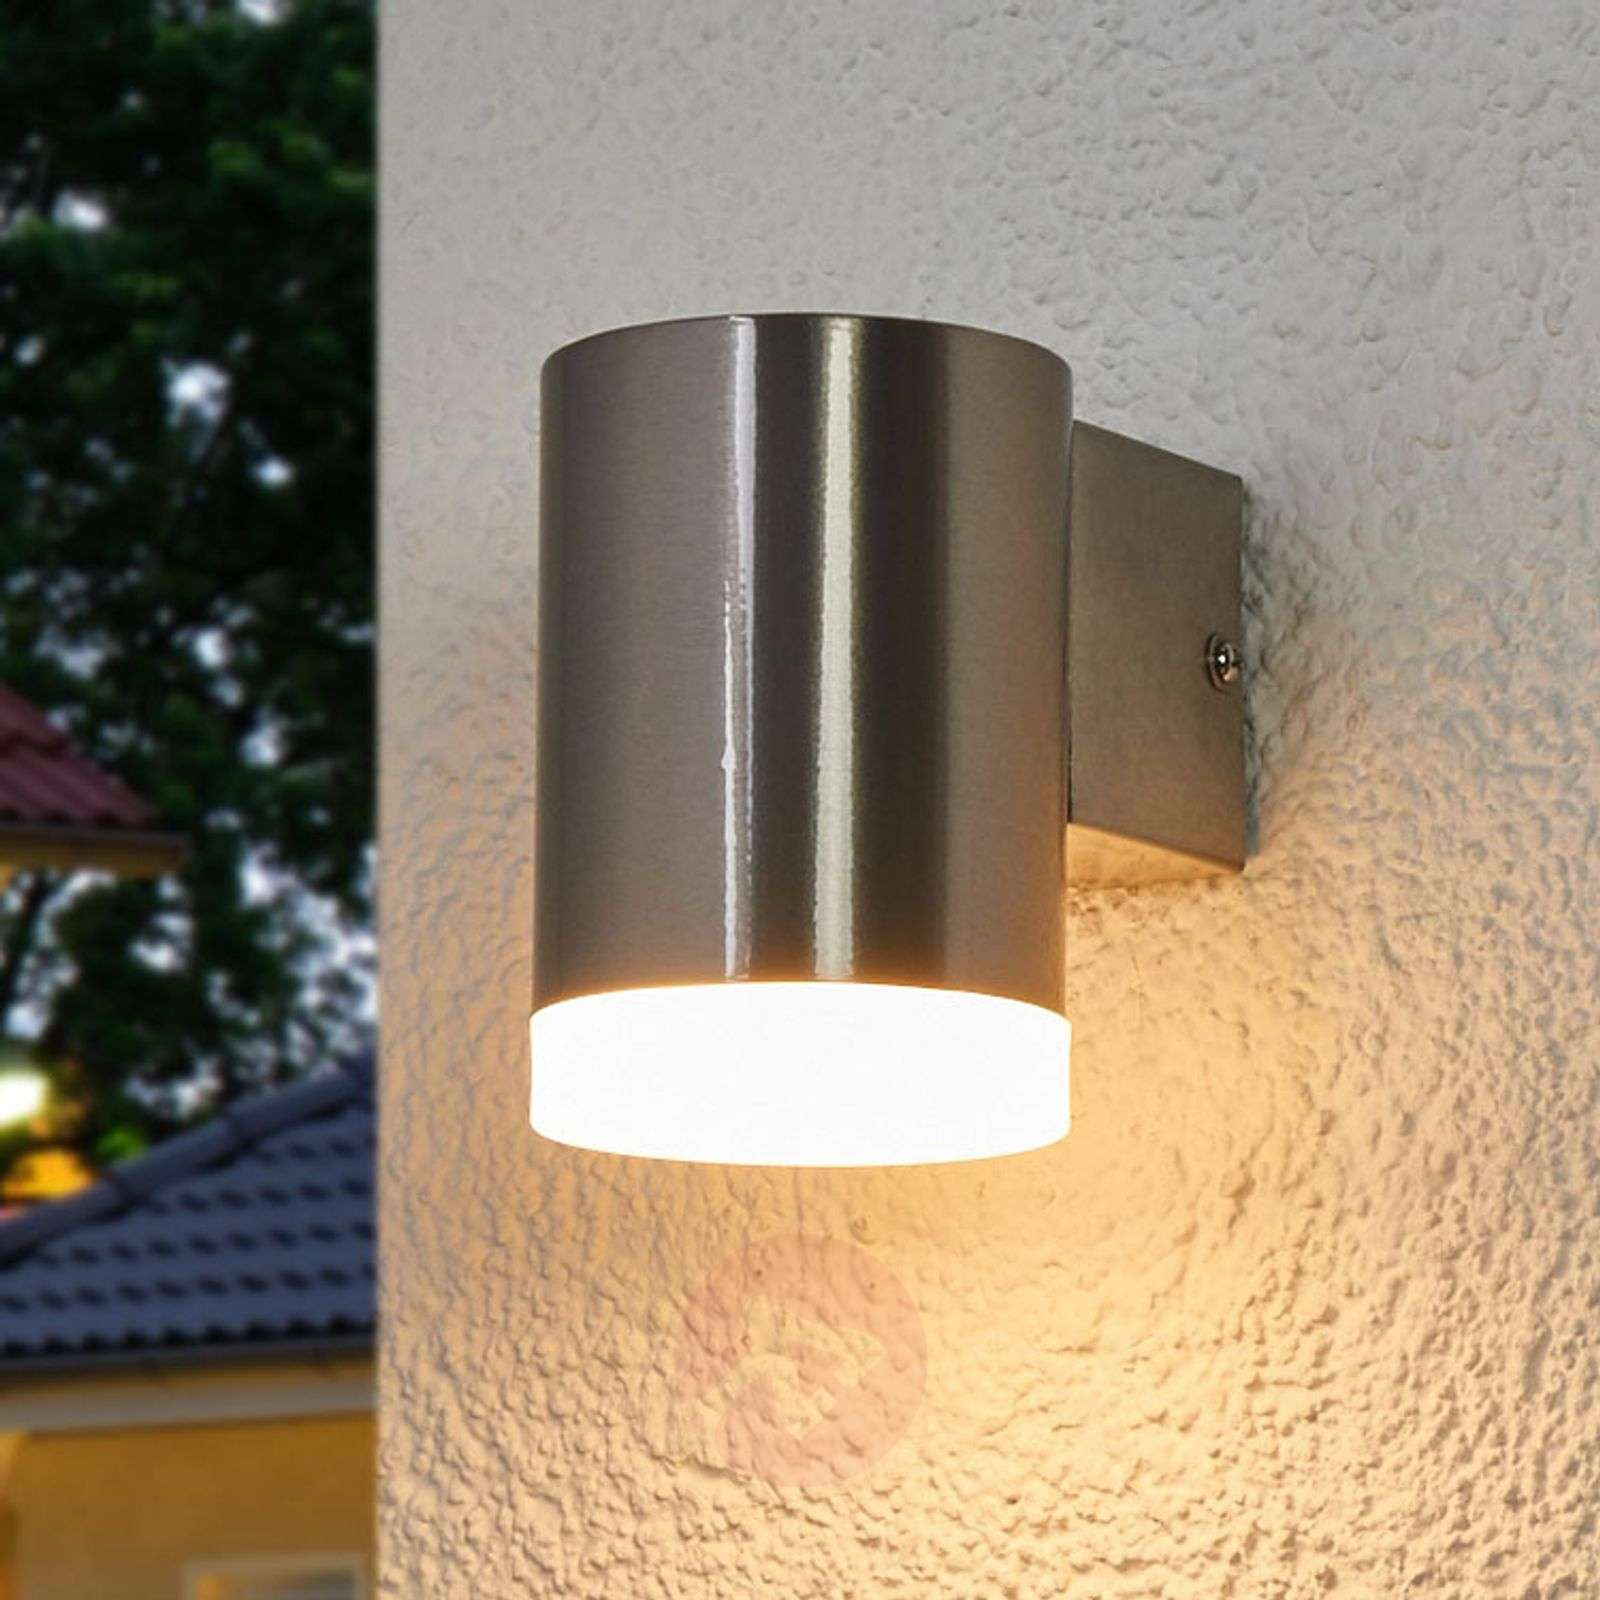 Downward facing LED outdoor wall light Eliano-9988088-03